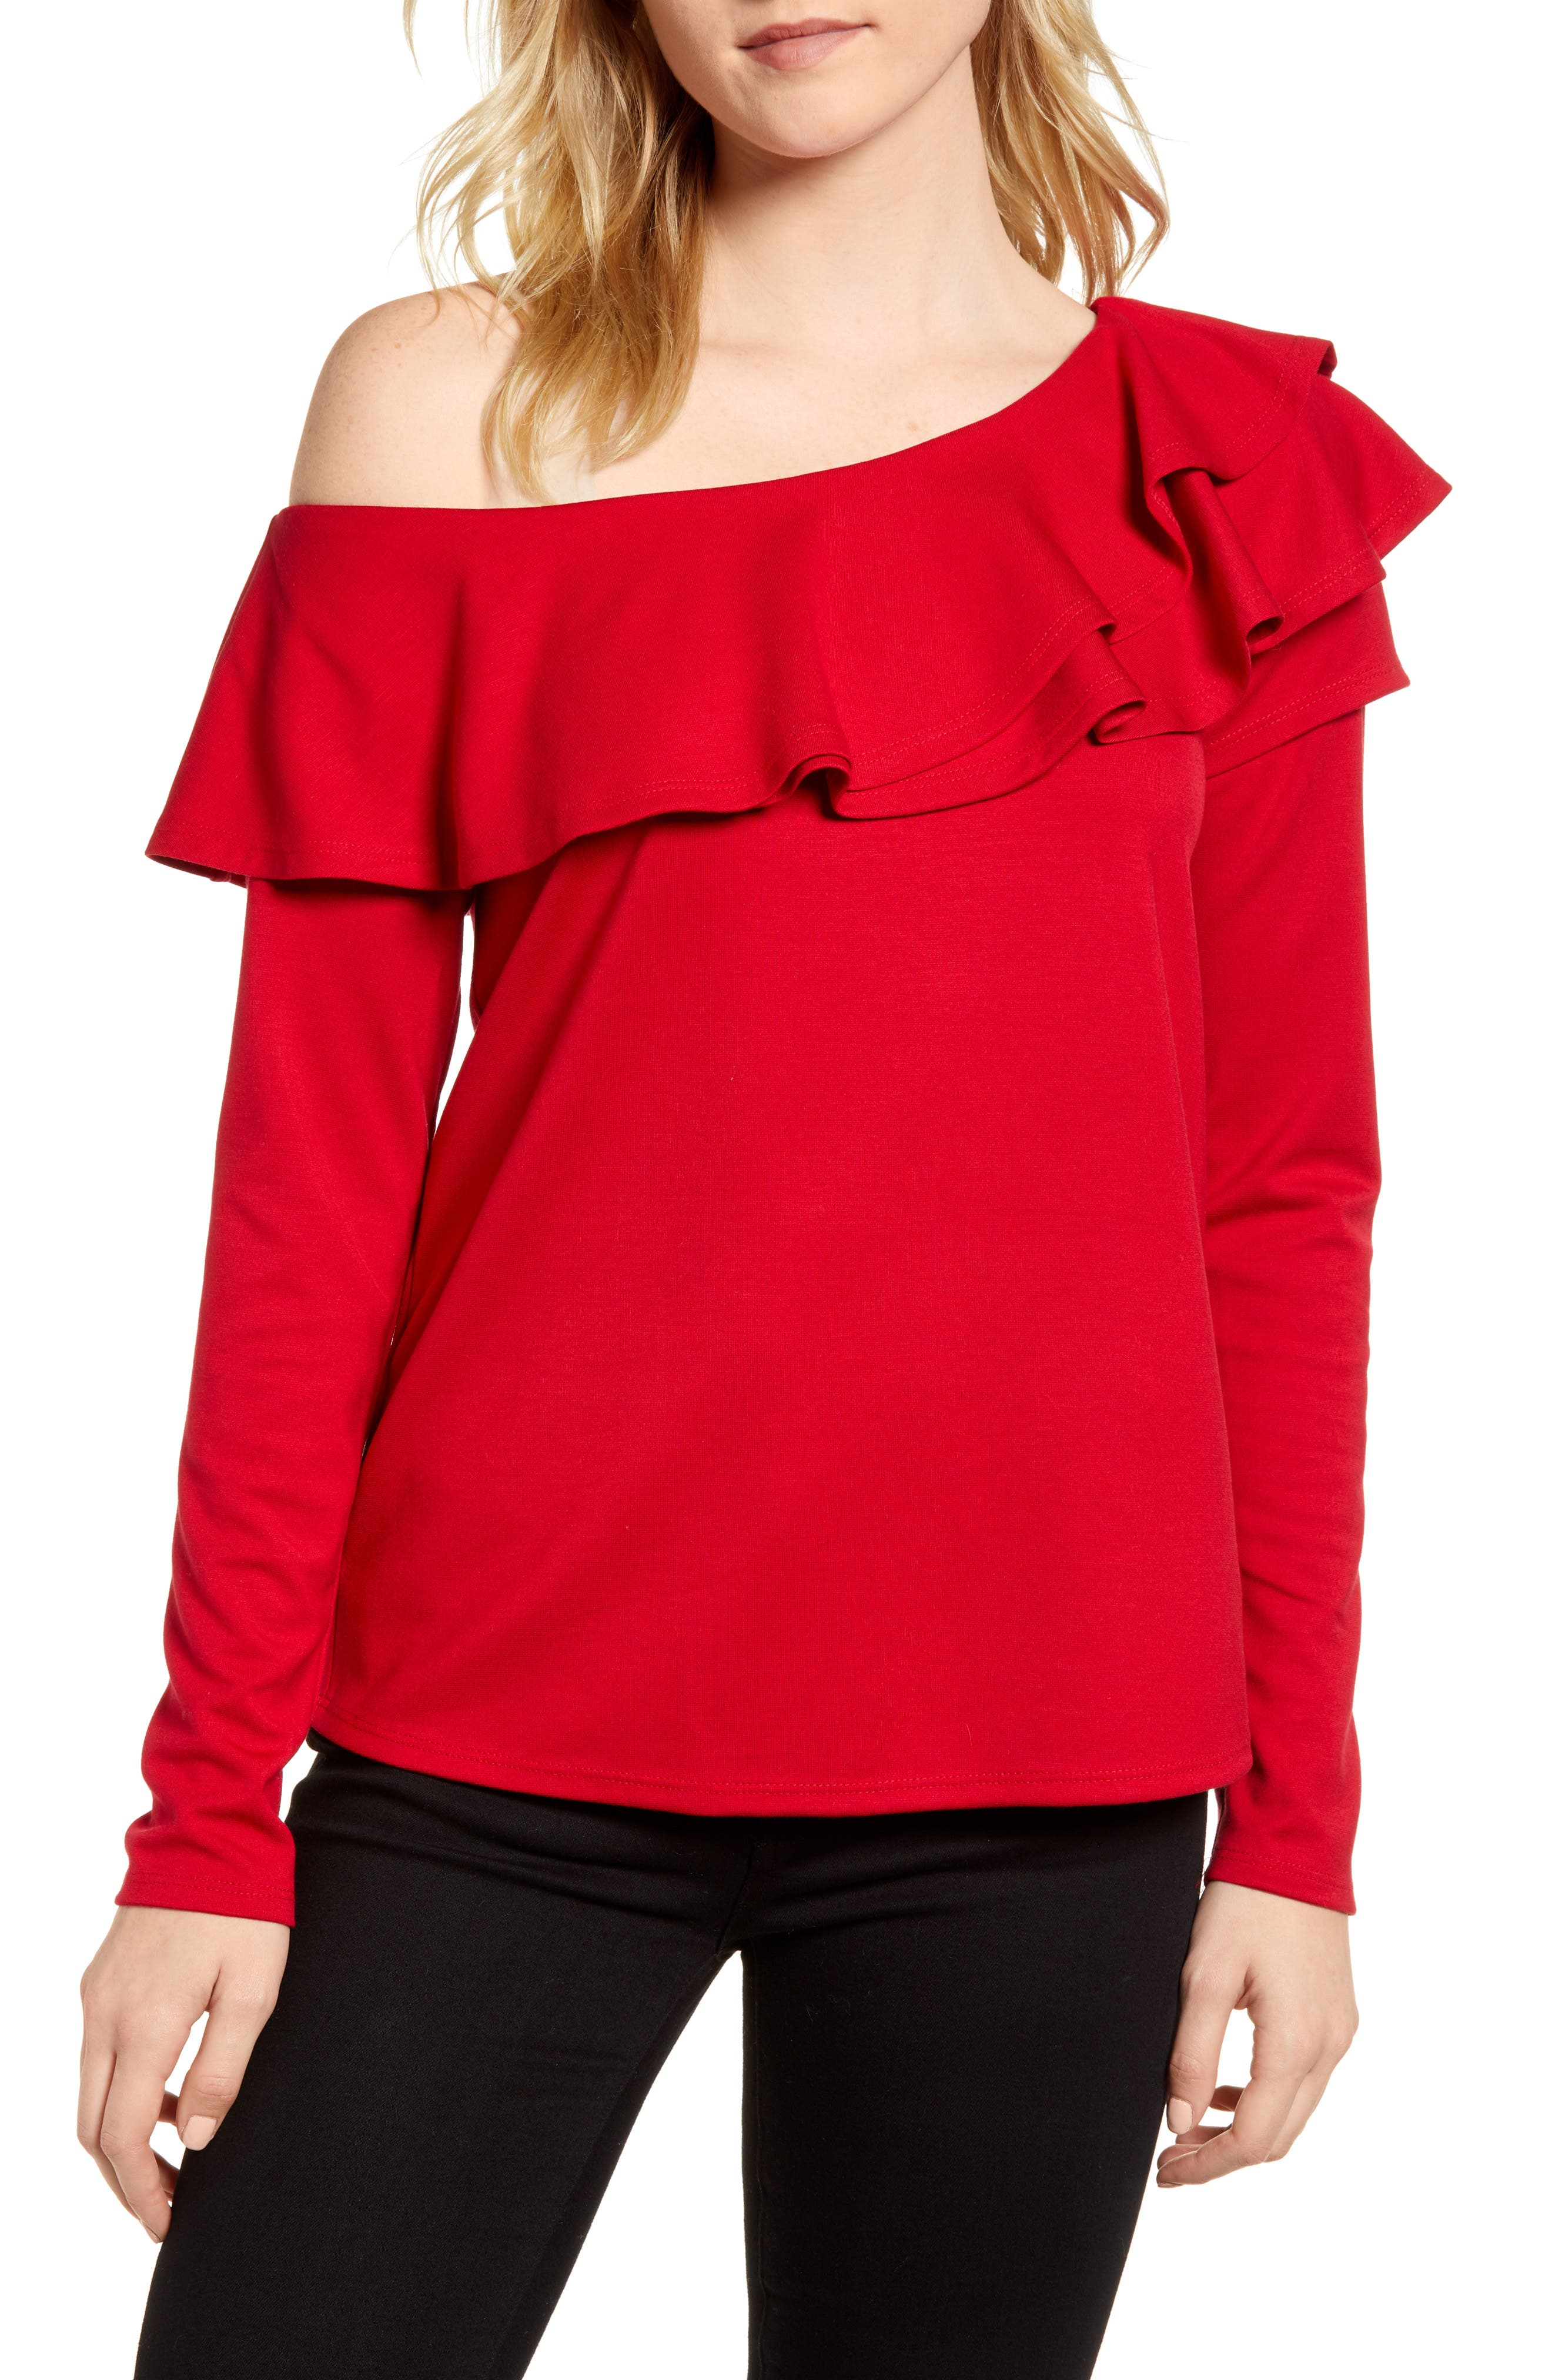 x Living in Yellow Elizabeth Date Night Top,                         Main,                         color, Red